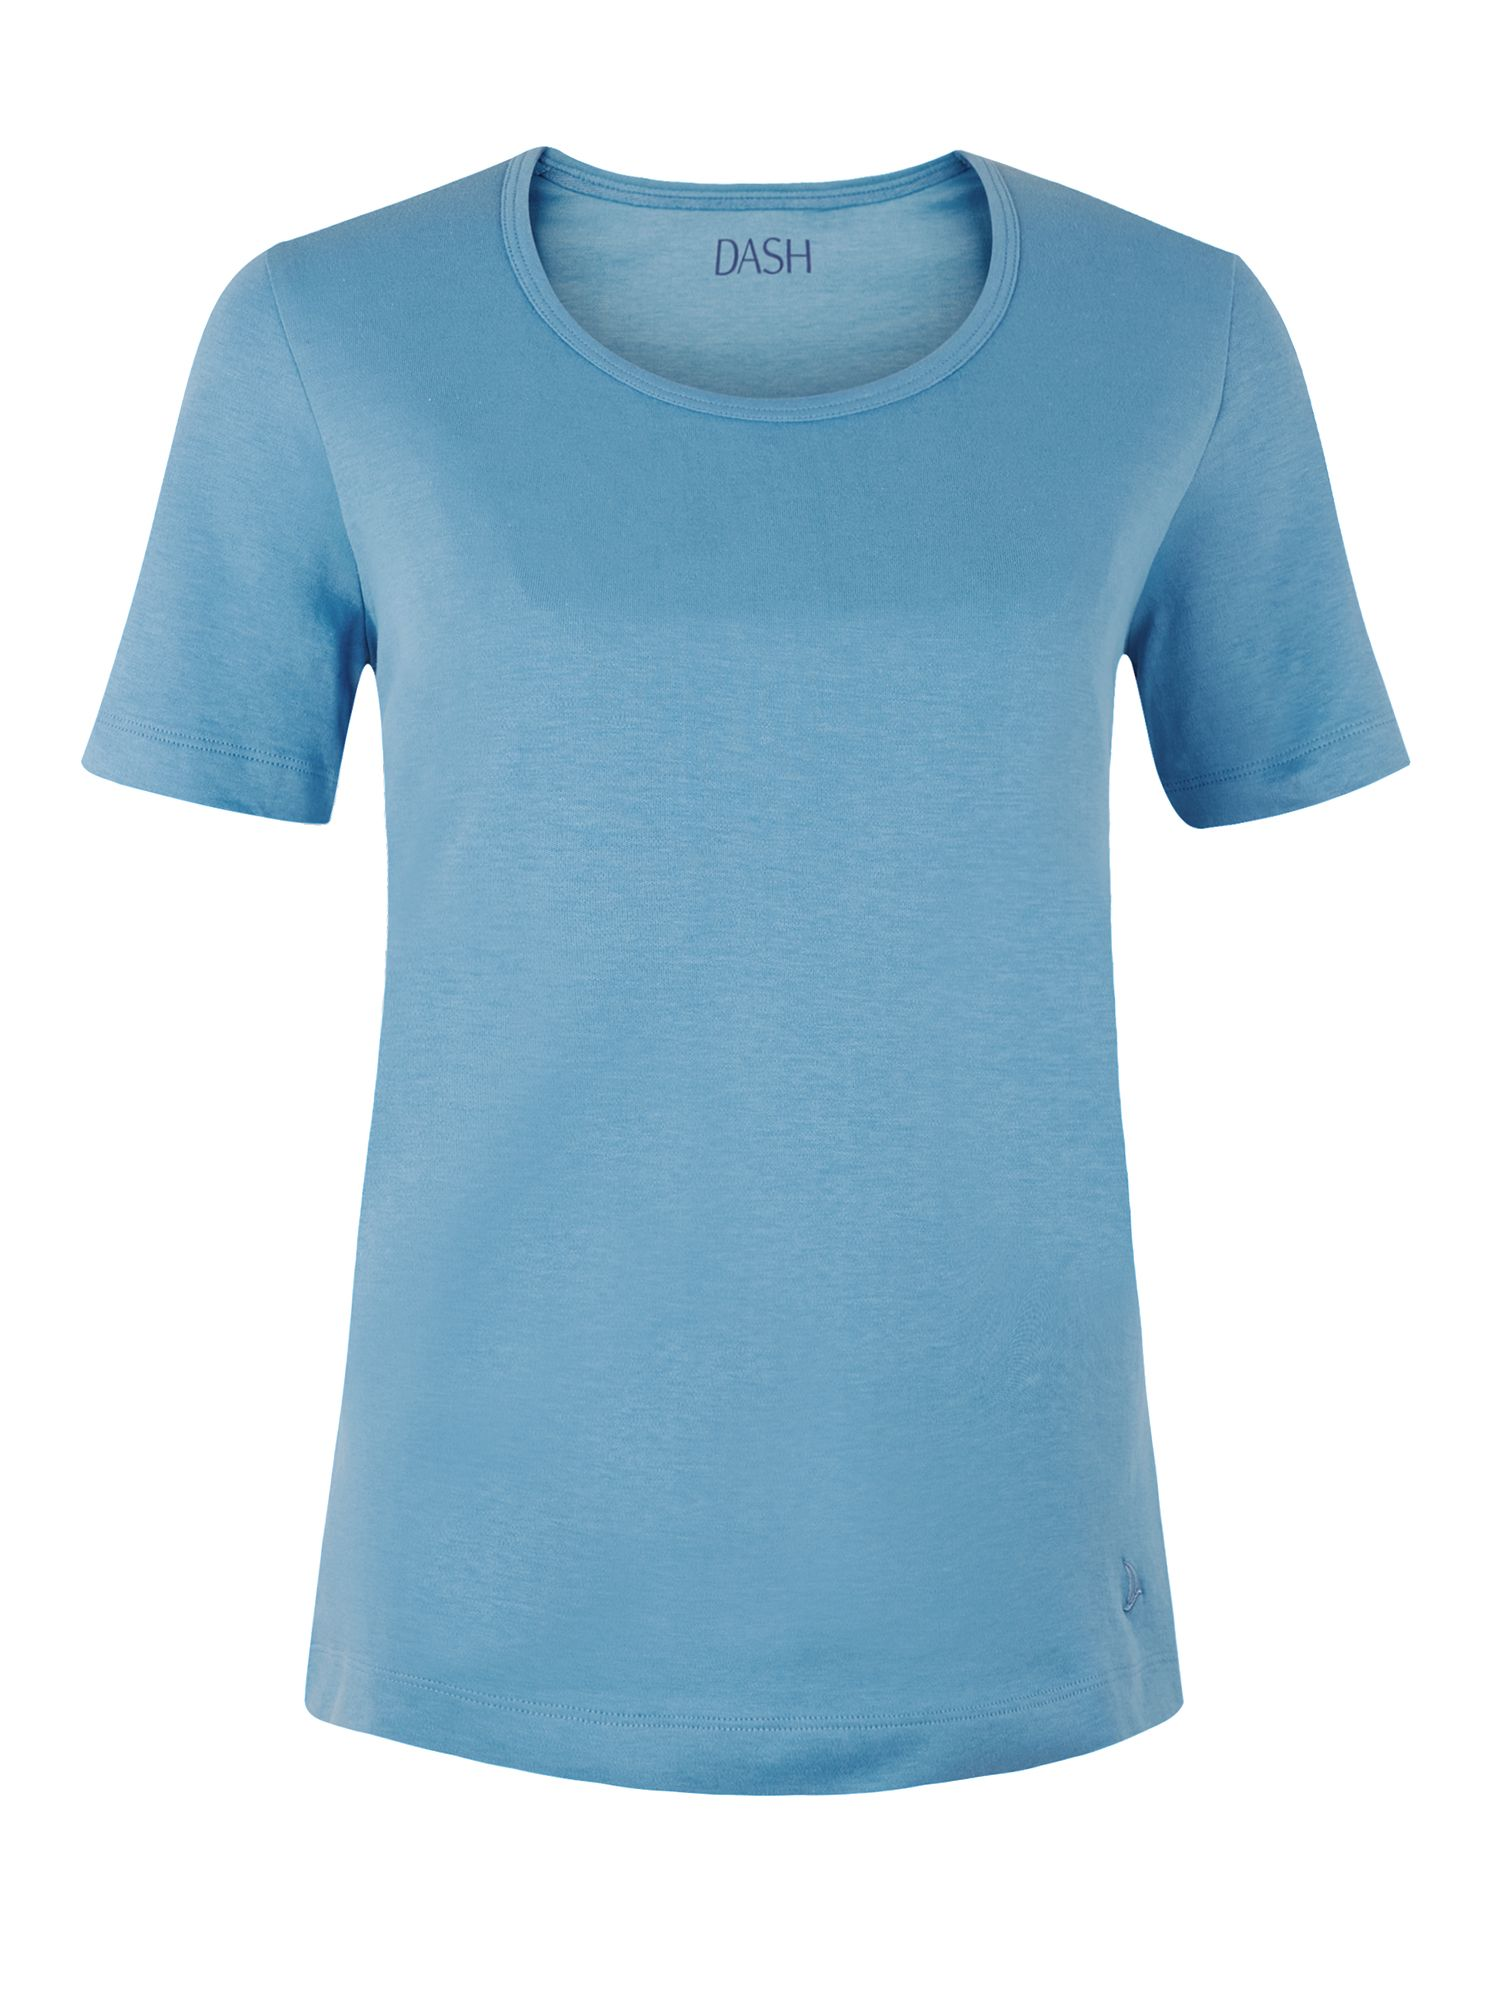 Dash Short Sleeve Wedwood Scoop Neck, Mid Blue